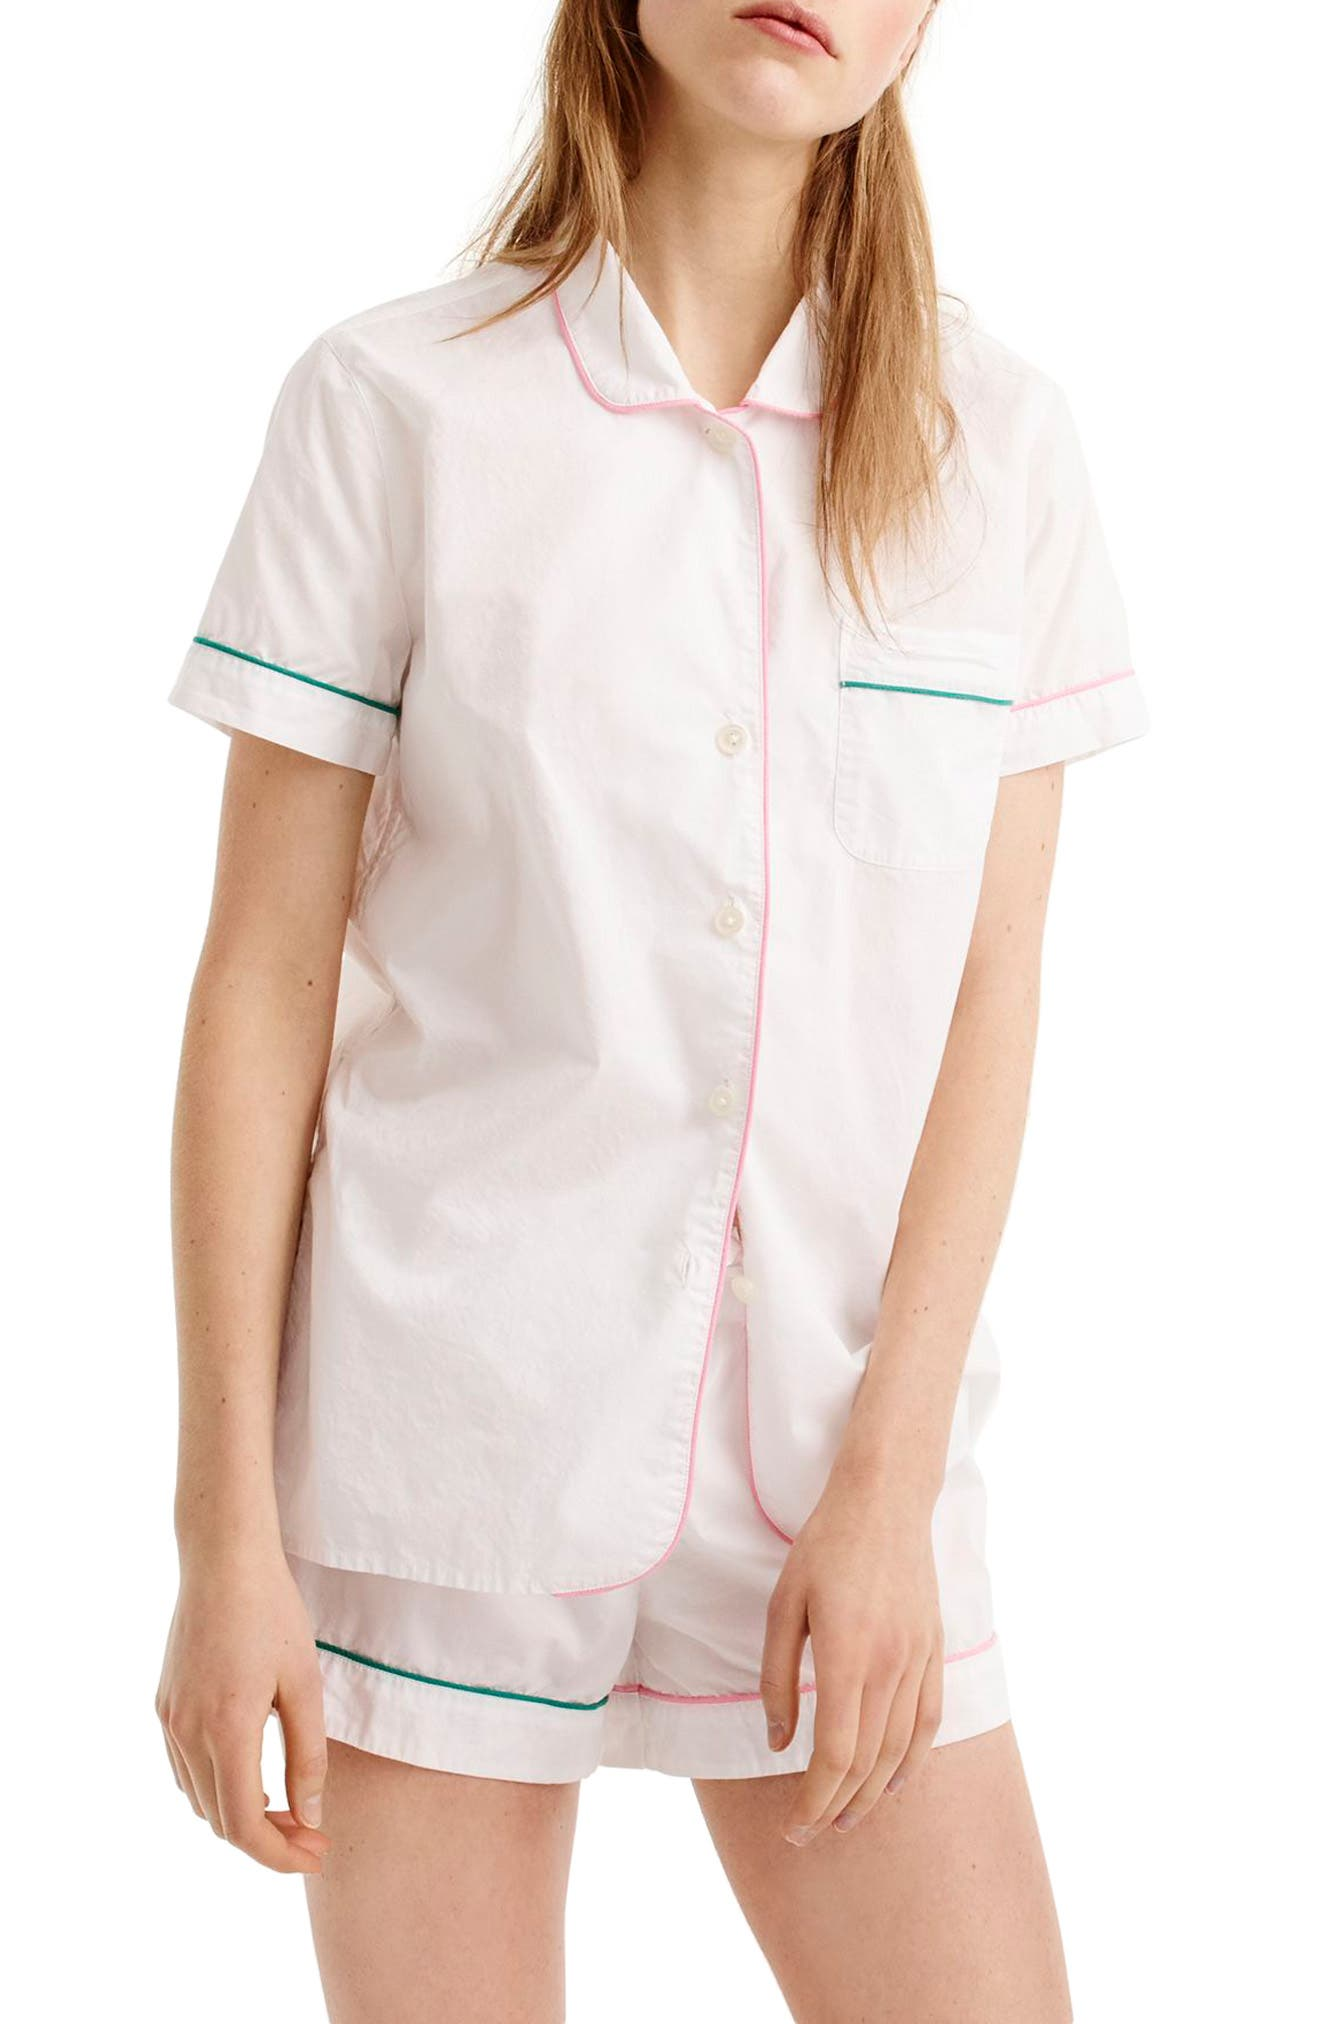 J.Crew Tipped Short Cotton Pajamas,                         Main,                         color, White Pink Green